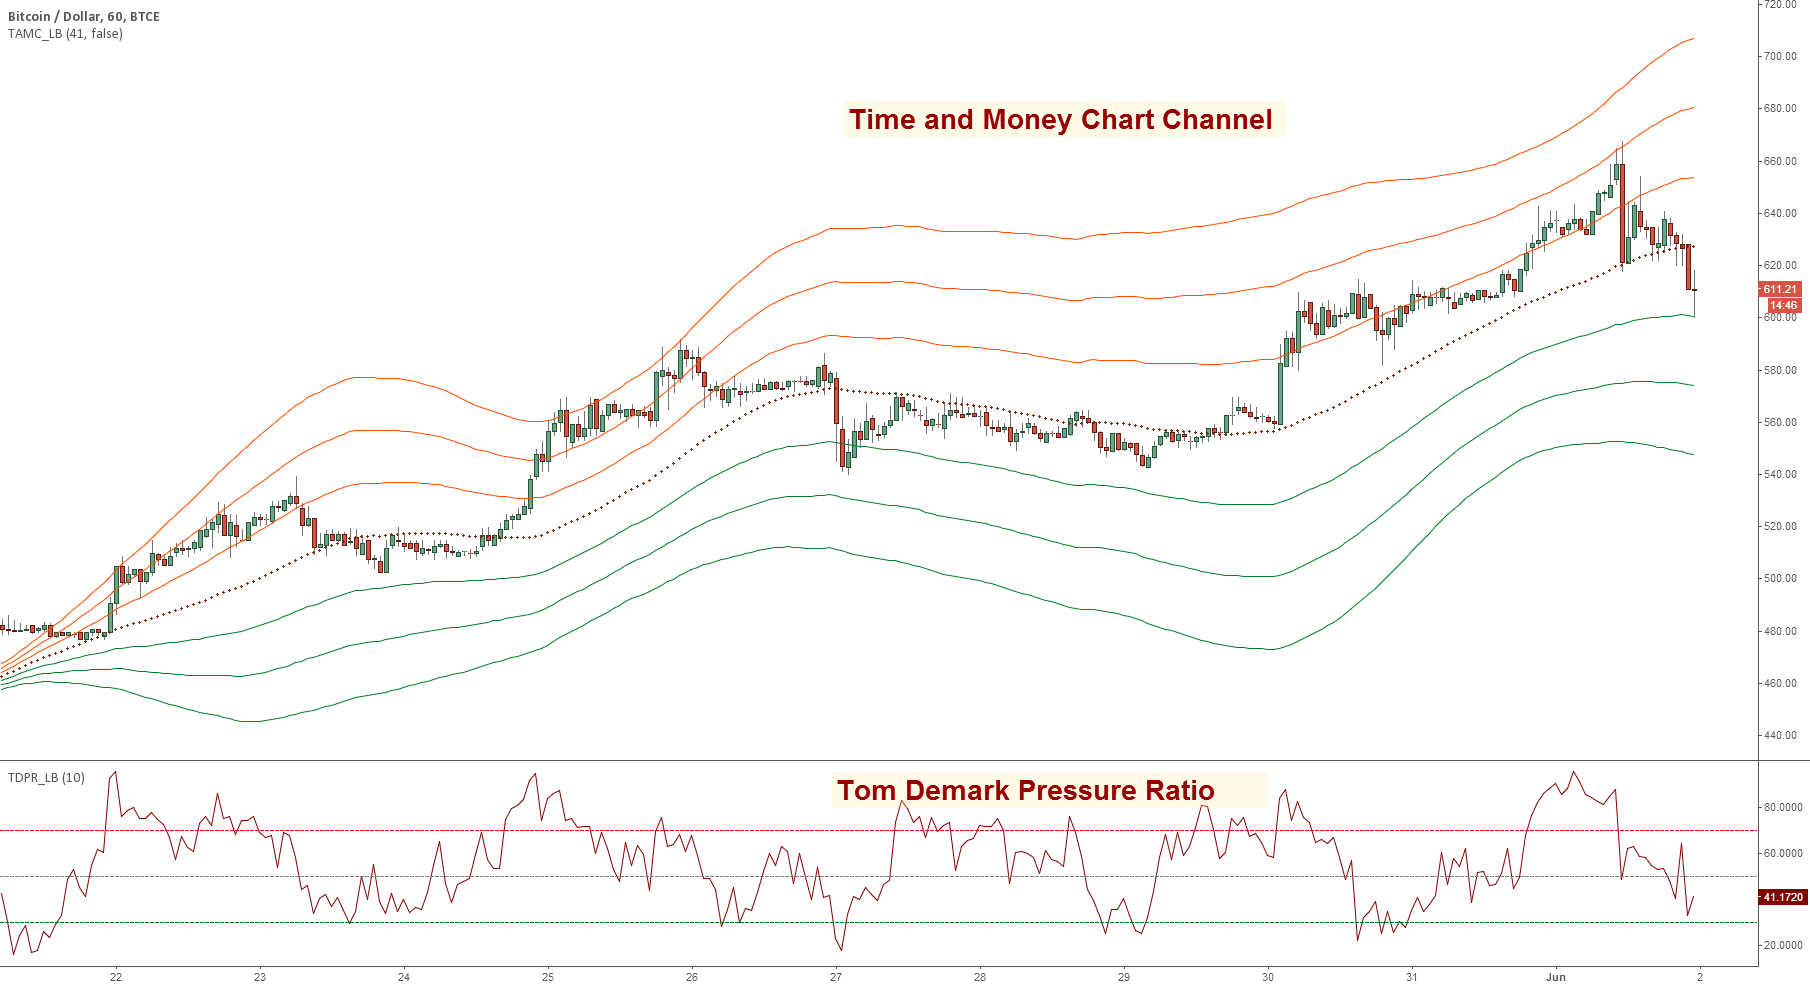 Indicators: Time and Money Chart Channel & Demark Pressure Ratio